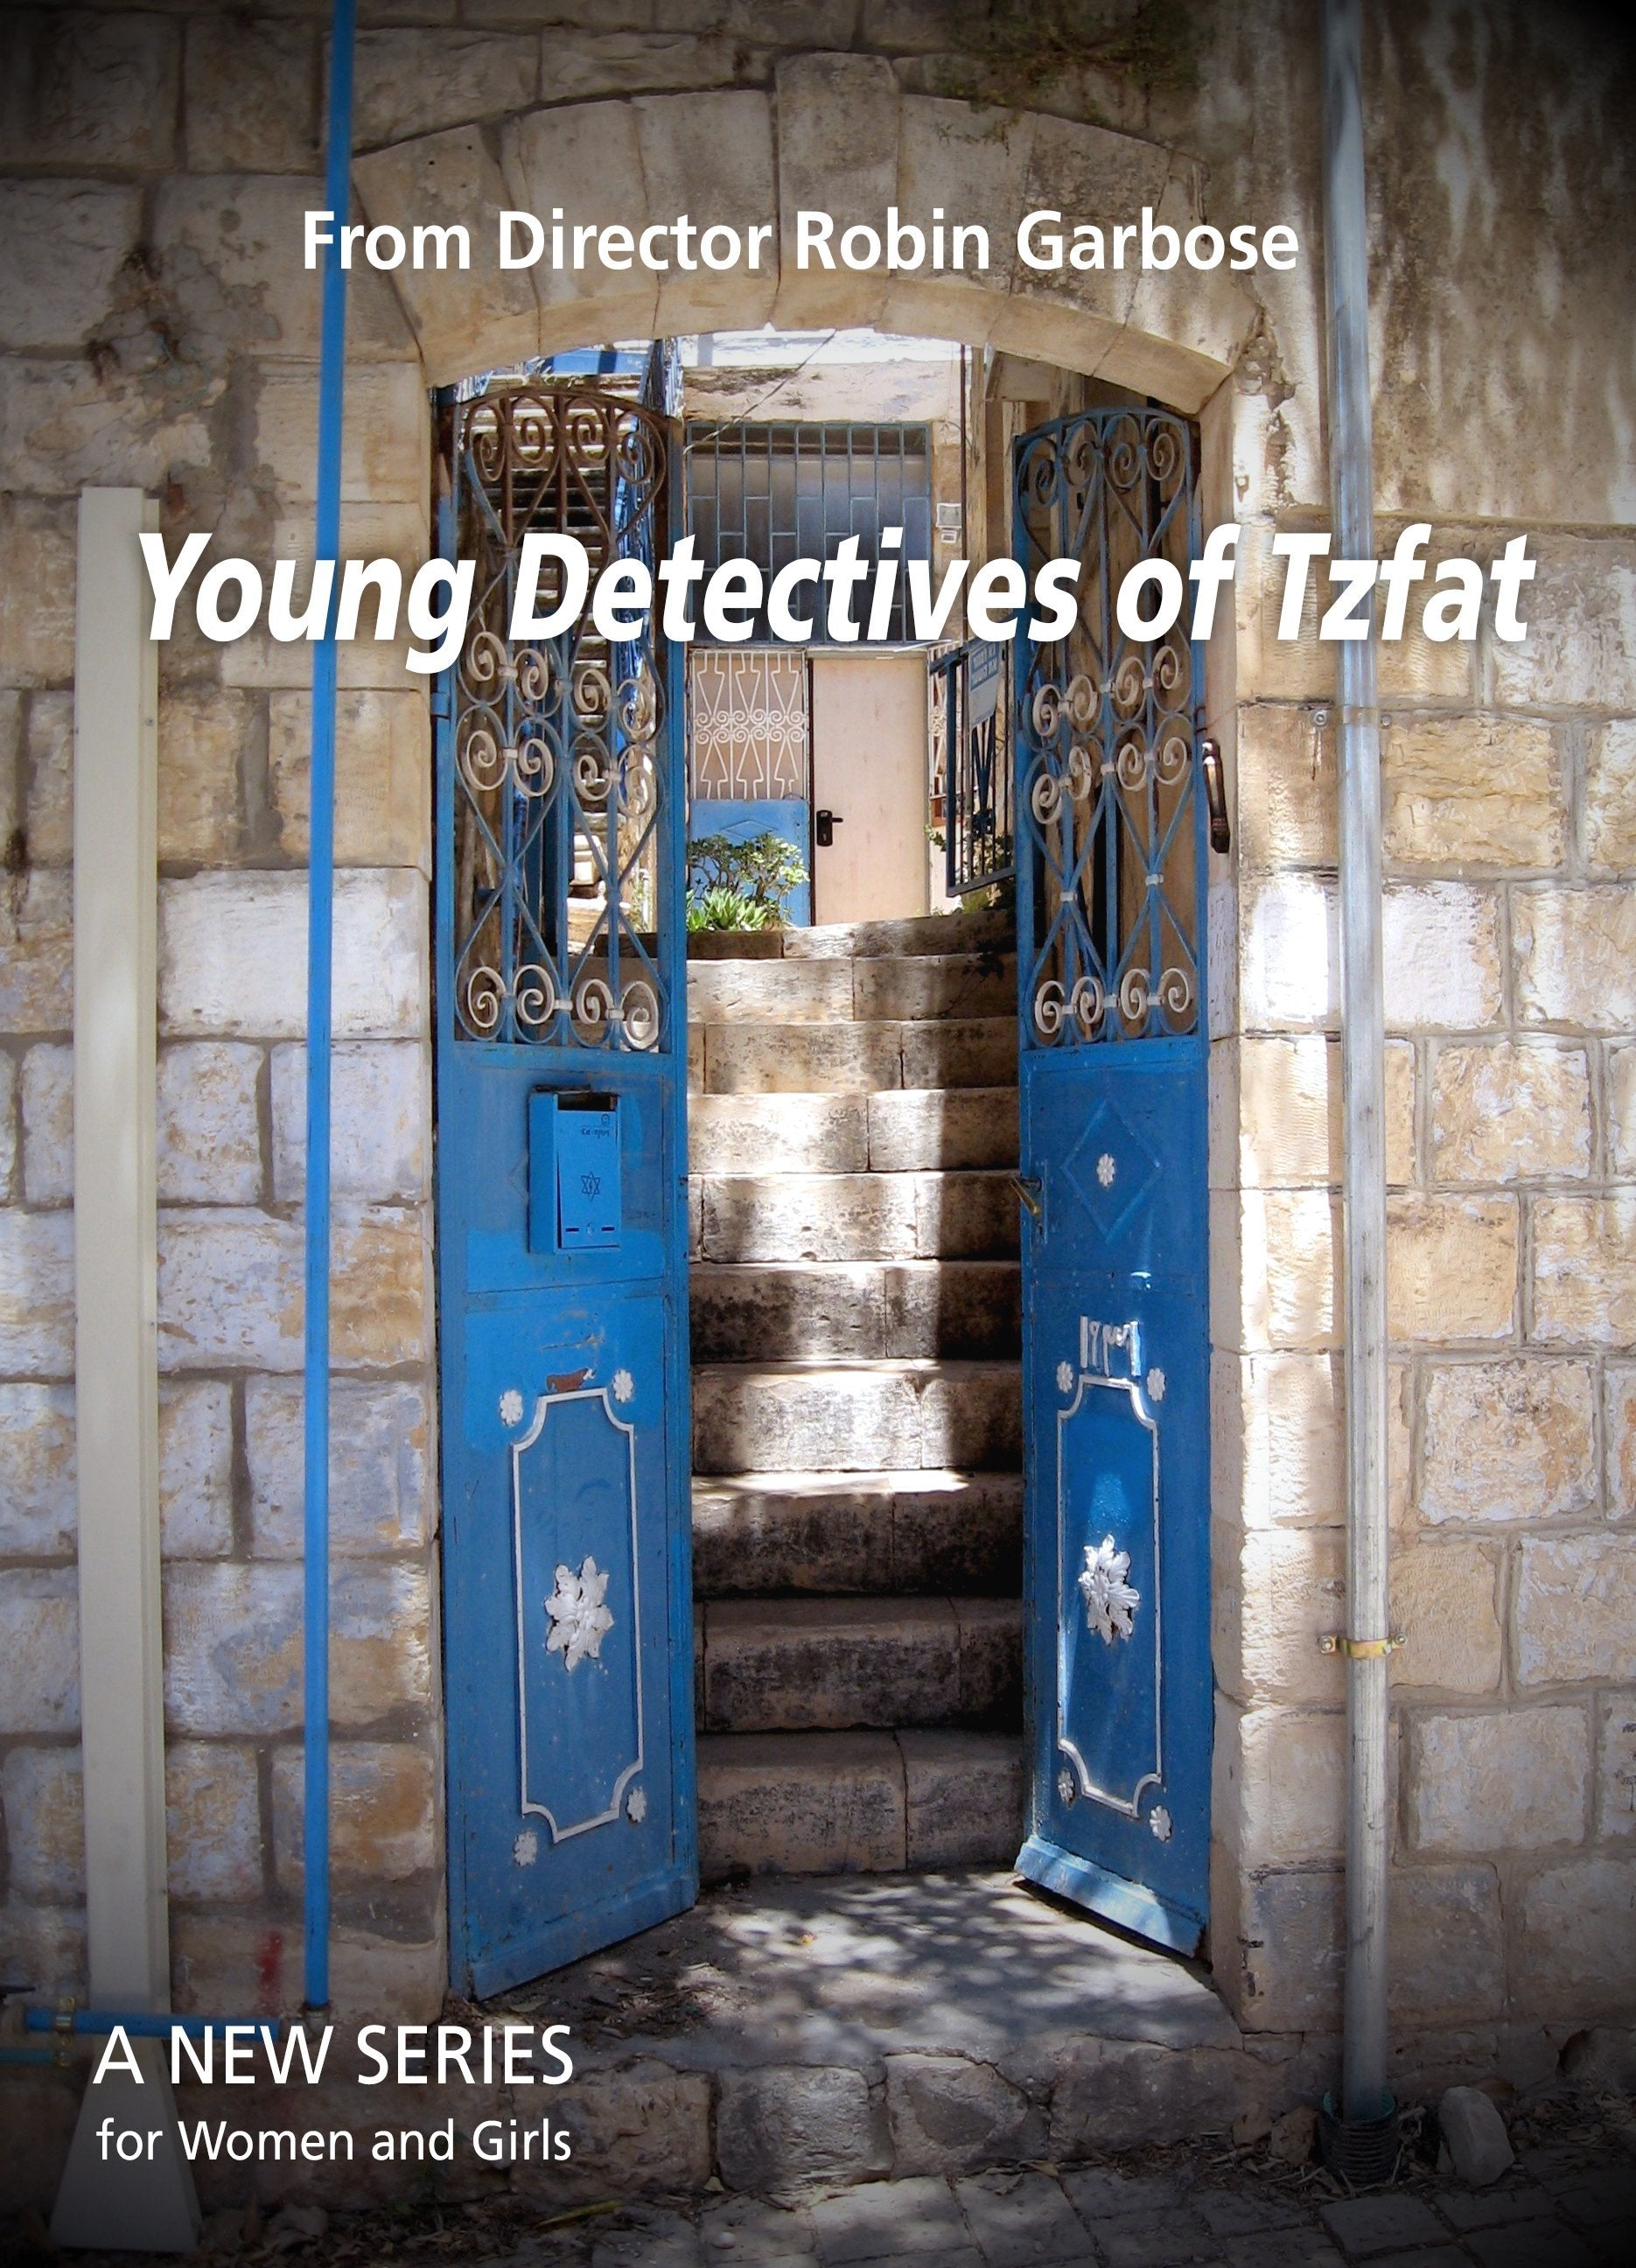 Young Detectives Of Tzfat - Episode 1 (By Robin Garbose)